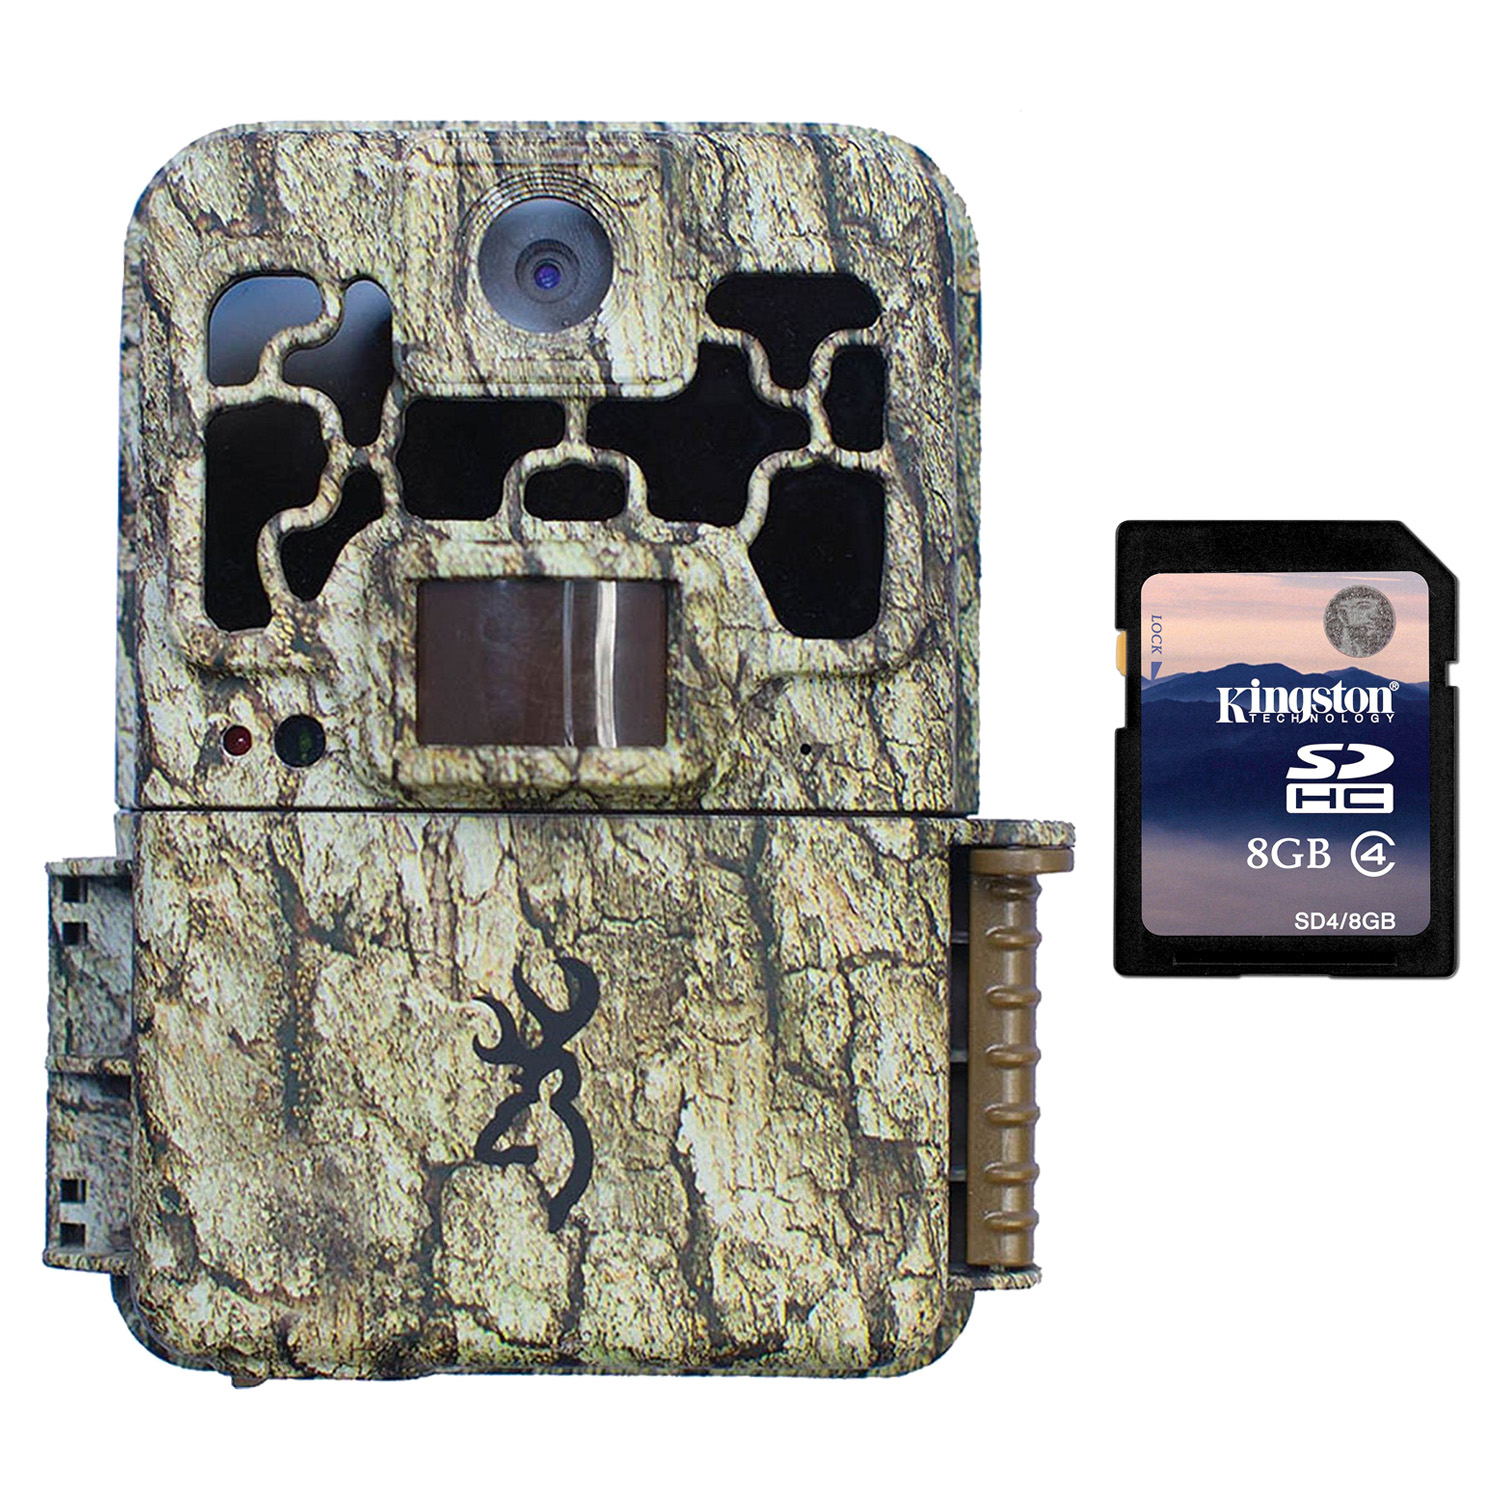 Browning Trail Cameras Spec Ops 10MP HD Video Infrared Game Camera + 8GB SD Card by Browning Trail Cameras